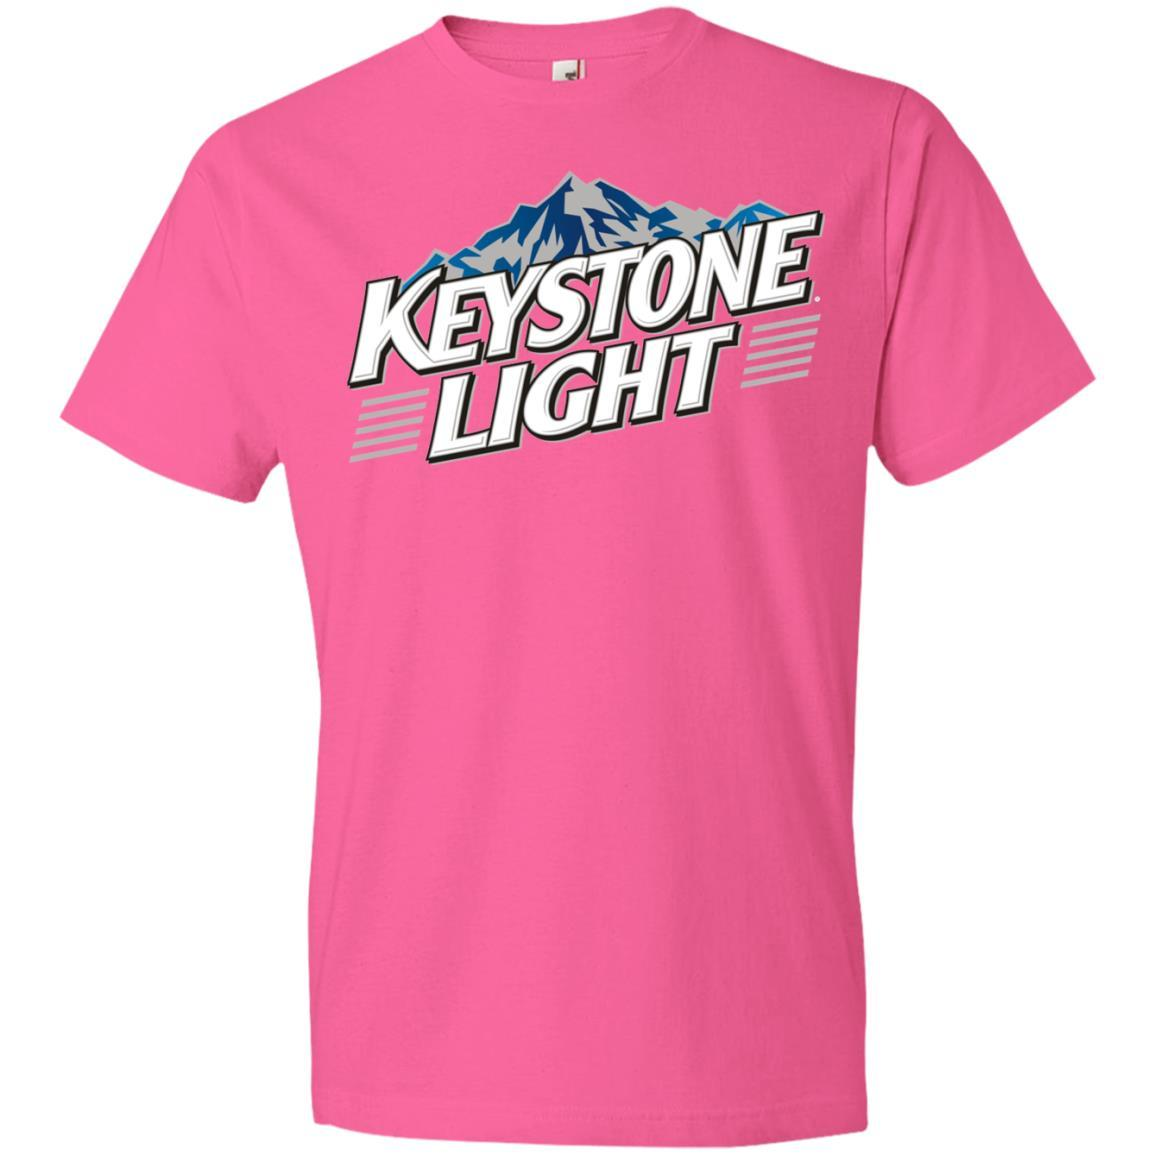 Keystone Light Beer - Anvil Lightweight T-Shirt Style / Color / Size